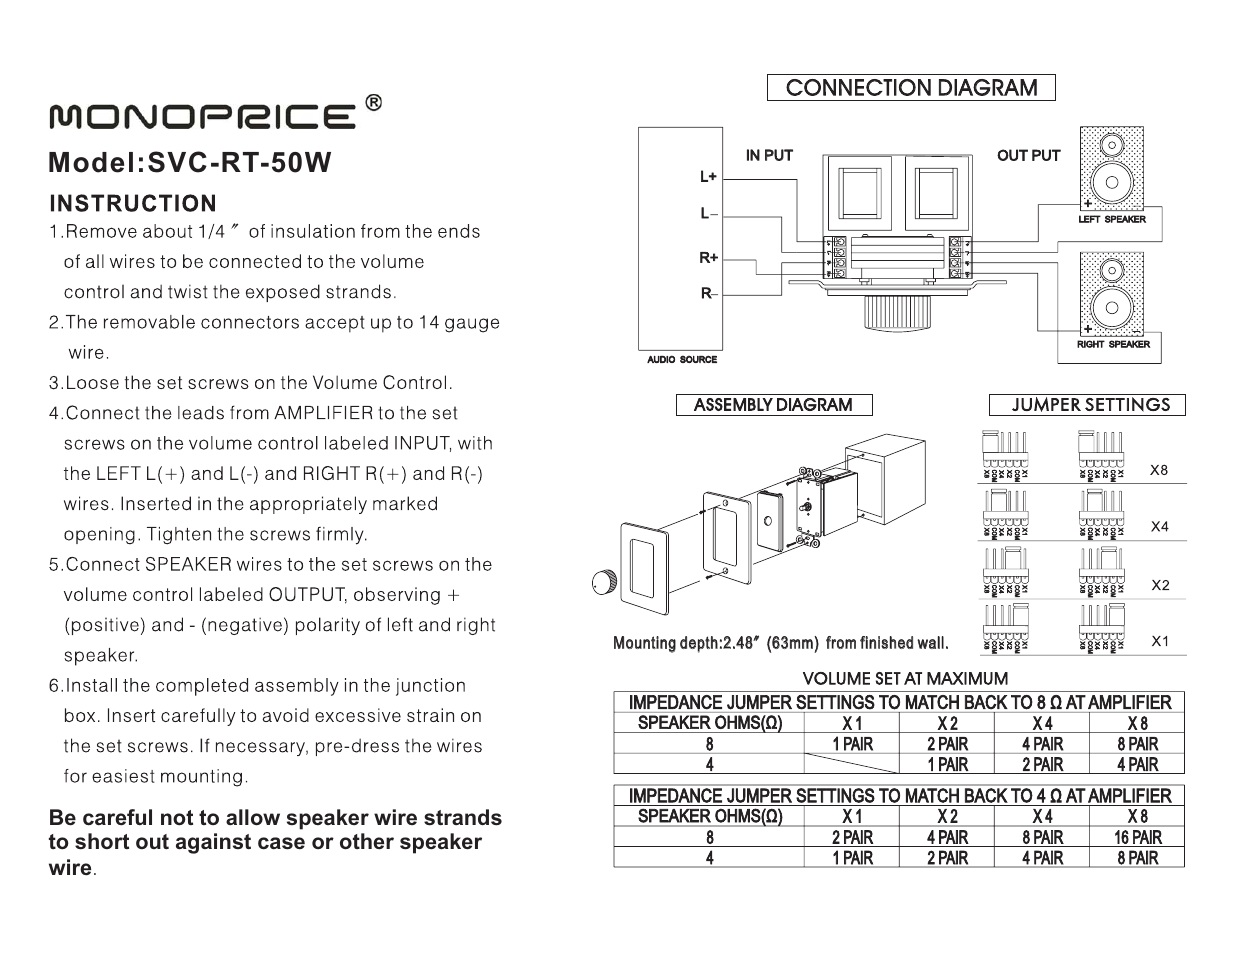 Monoprice 6028 Speaker Volume Control User Manual